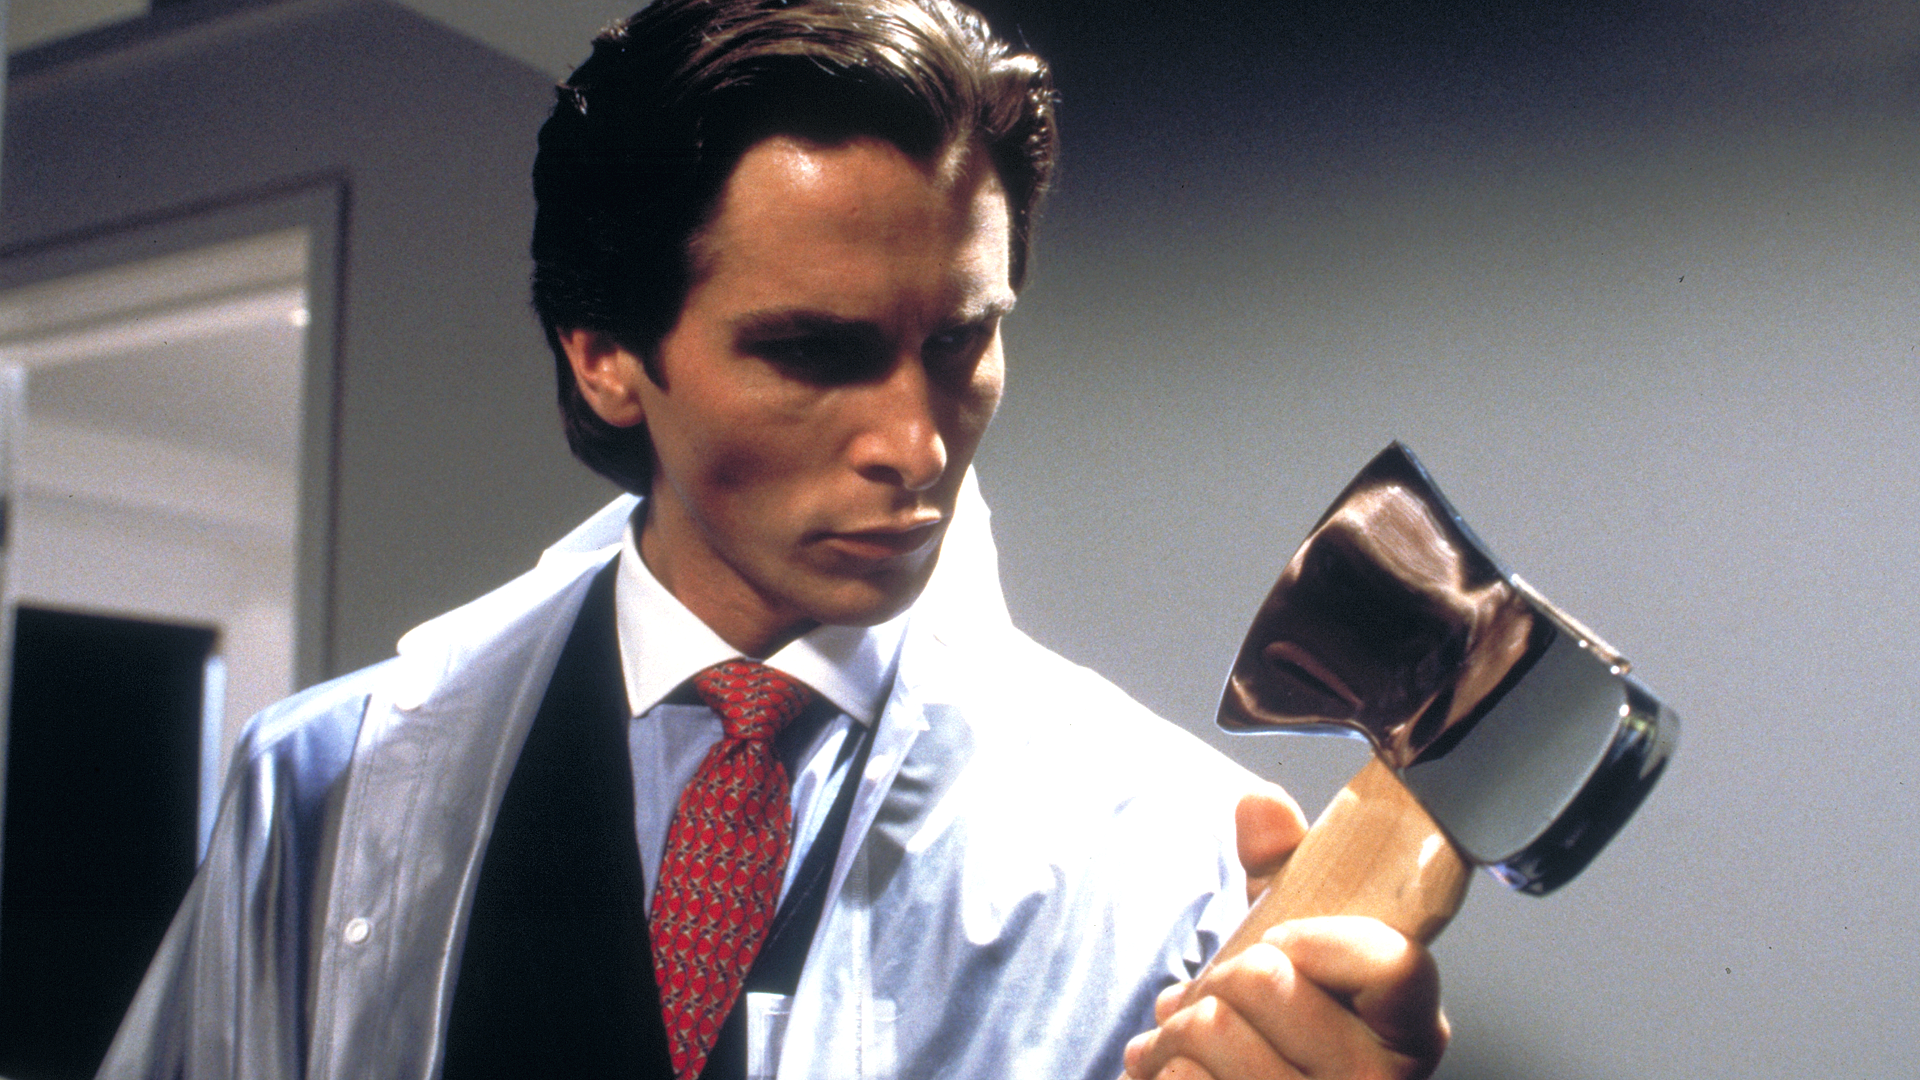 Copy of American Psycho dir. by Mary Harron